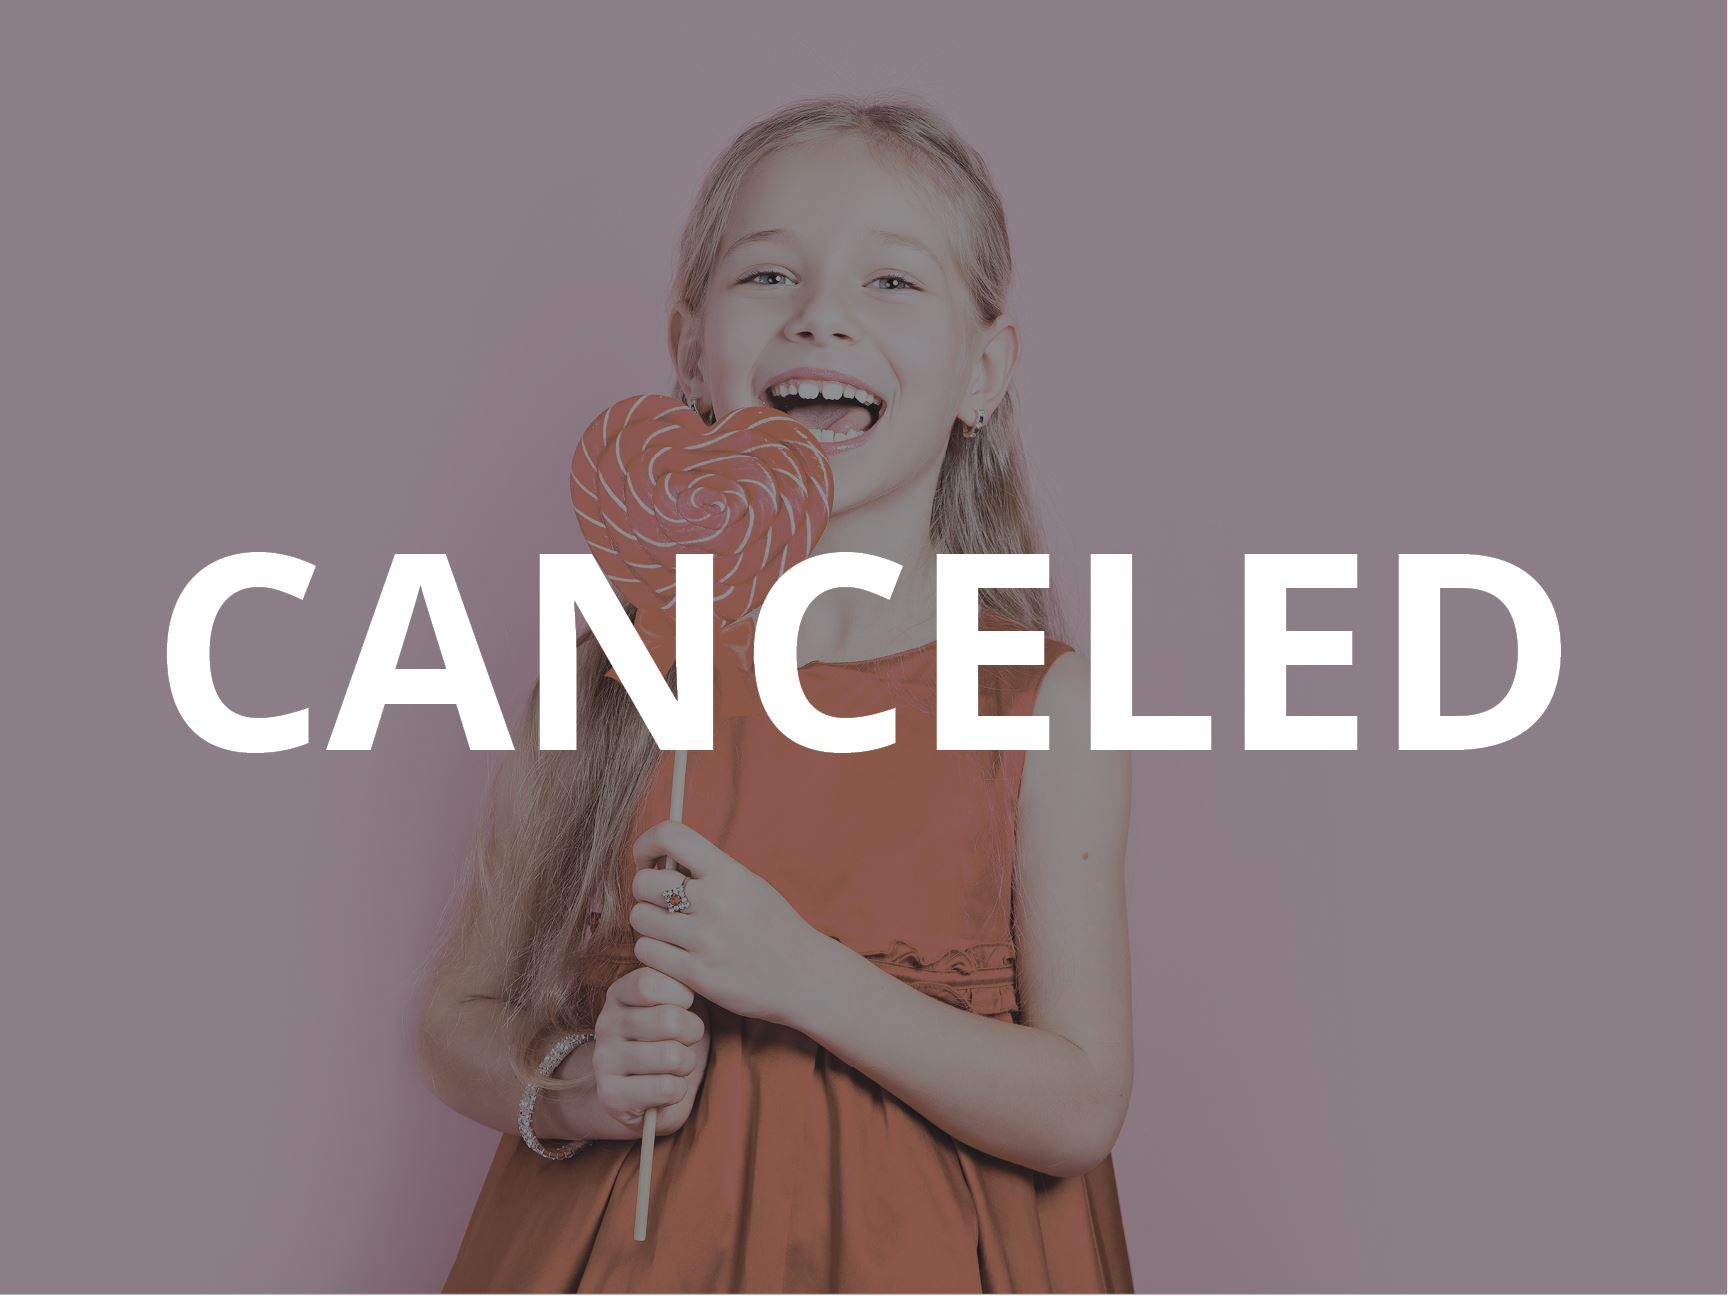 Canceled Sweetheart Dance